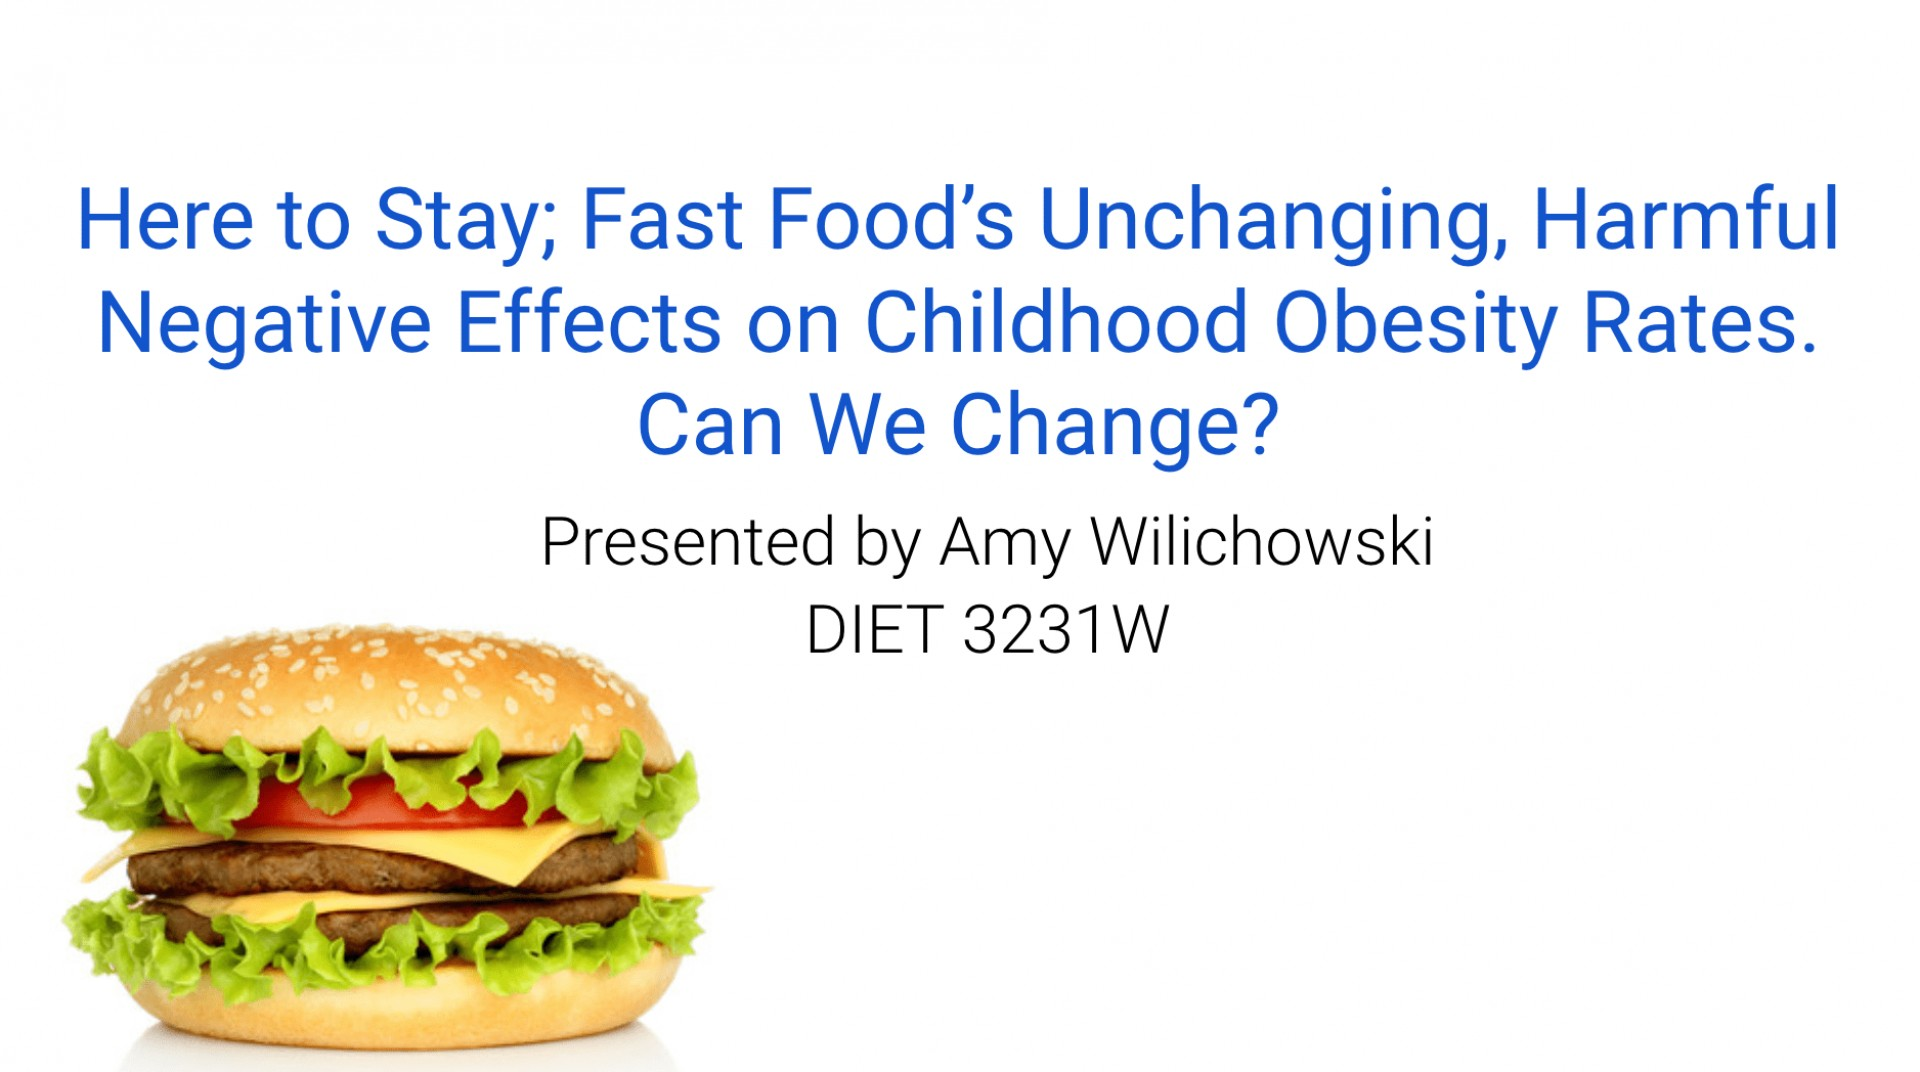 008 Research Paper Screen Shot At Pmfit18762c1048ssl1 Childhood Obesity Marvelous Outline 1920